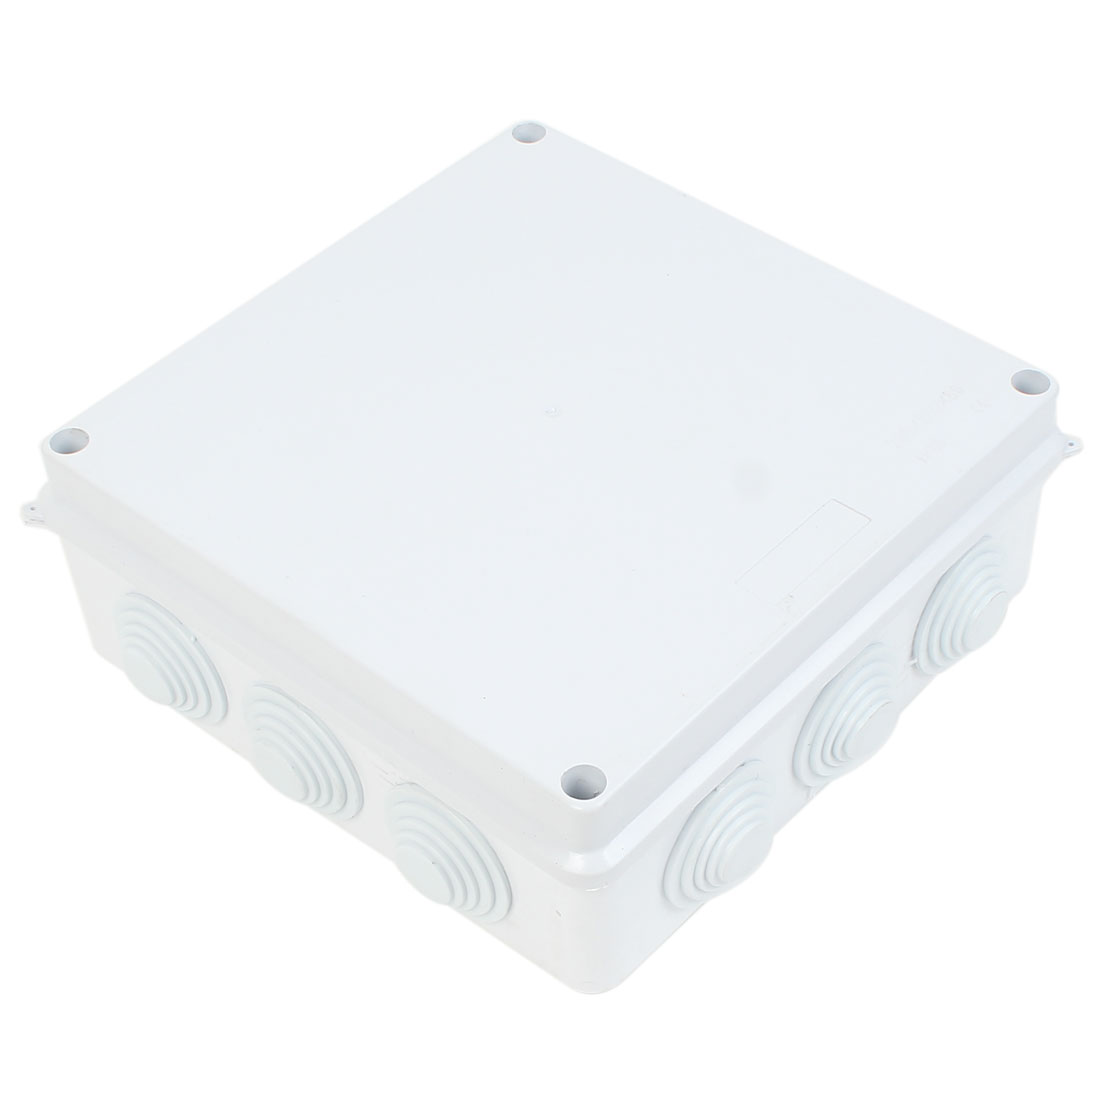 White ABS IP65 Waterproof Sealed Electrical Junction Box Case 200x200x80mm